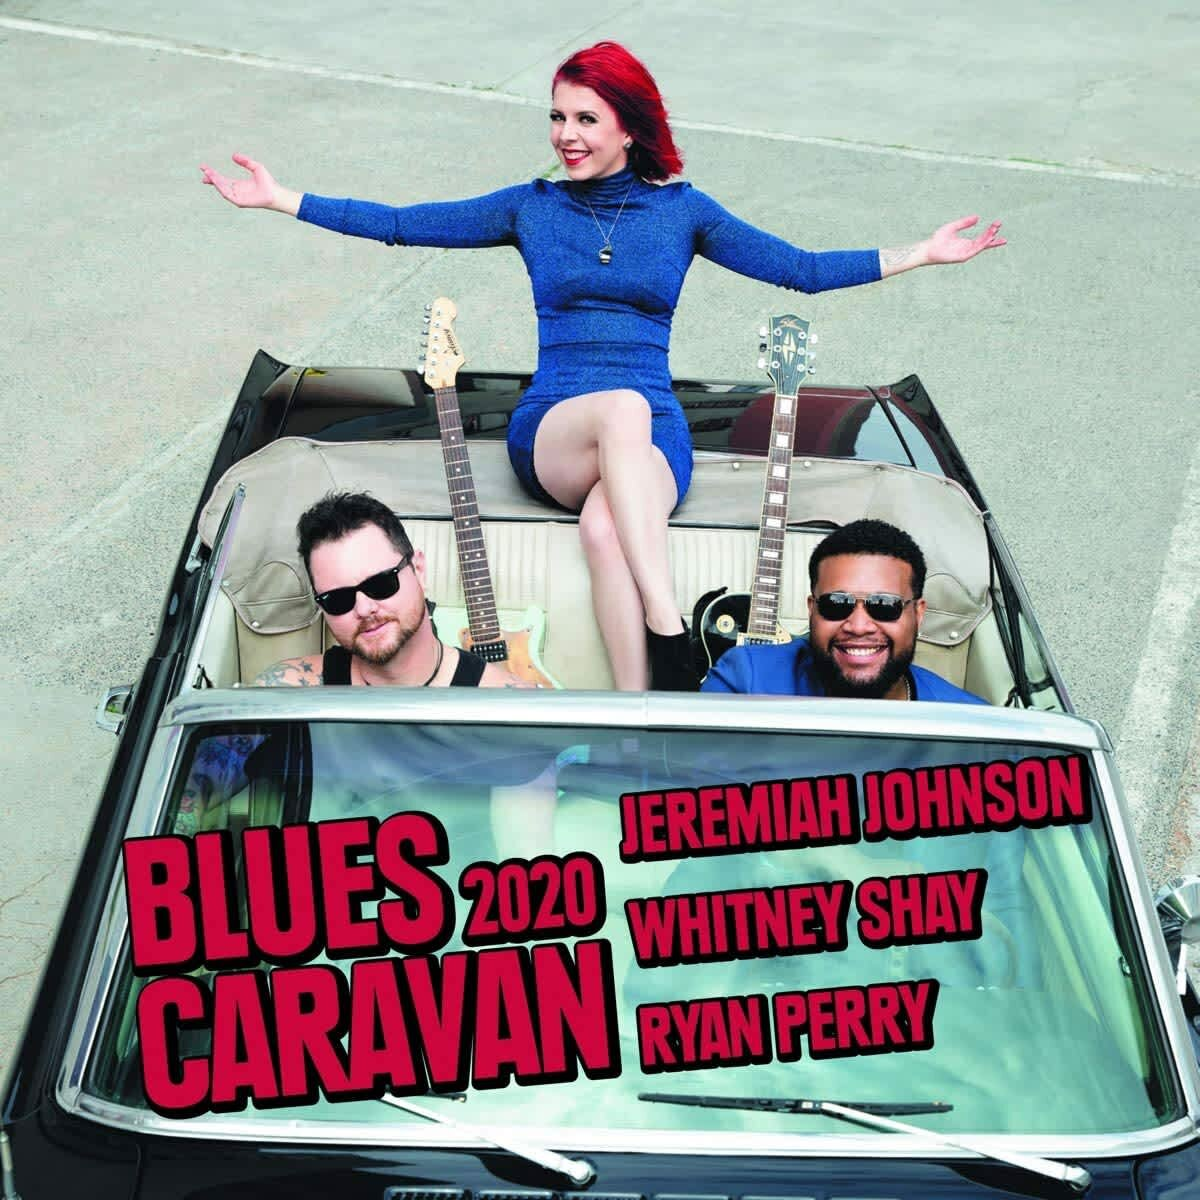 Blues Caravan 2020 with Jeremiah Johnson, Whitney Shay, Ryan Perry